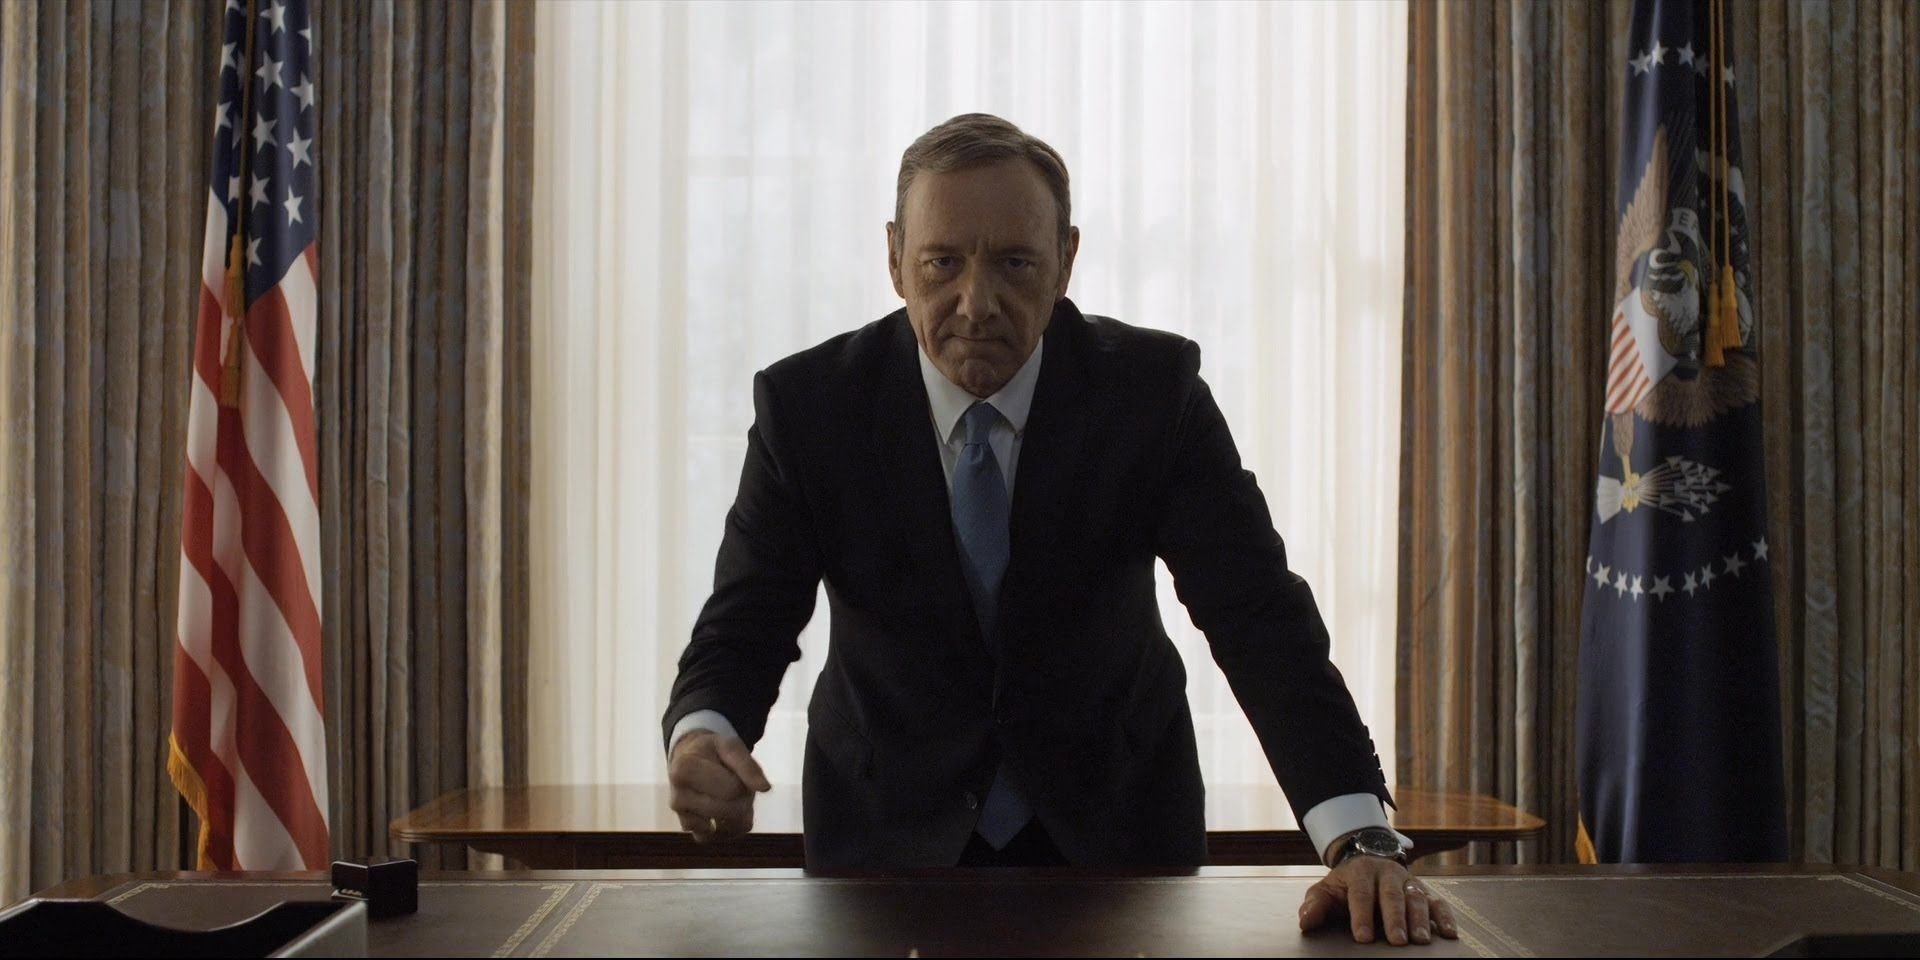 House Of Cards Season 2 Epic Ending Frank Underwood The One Who Knocks House Of Cards Seasons House Of Cards House Of Cards Netflix